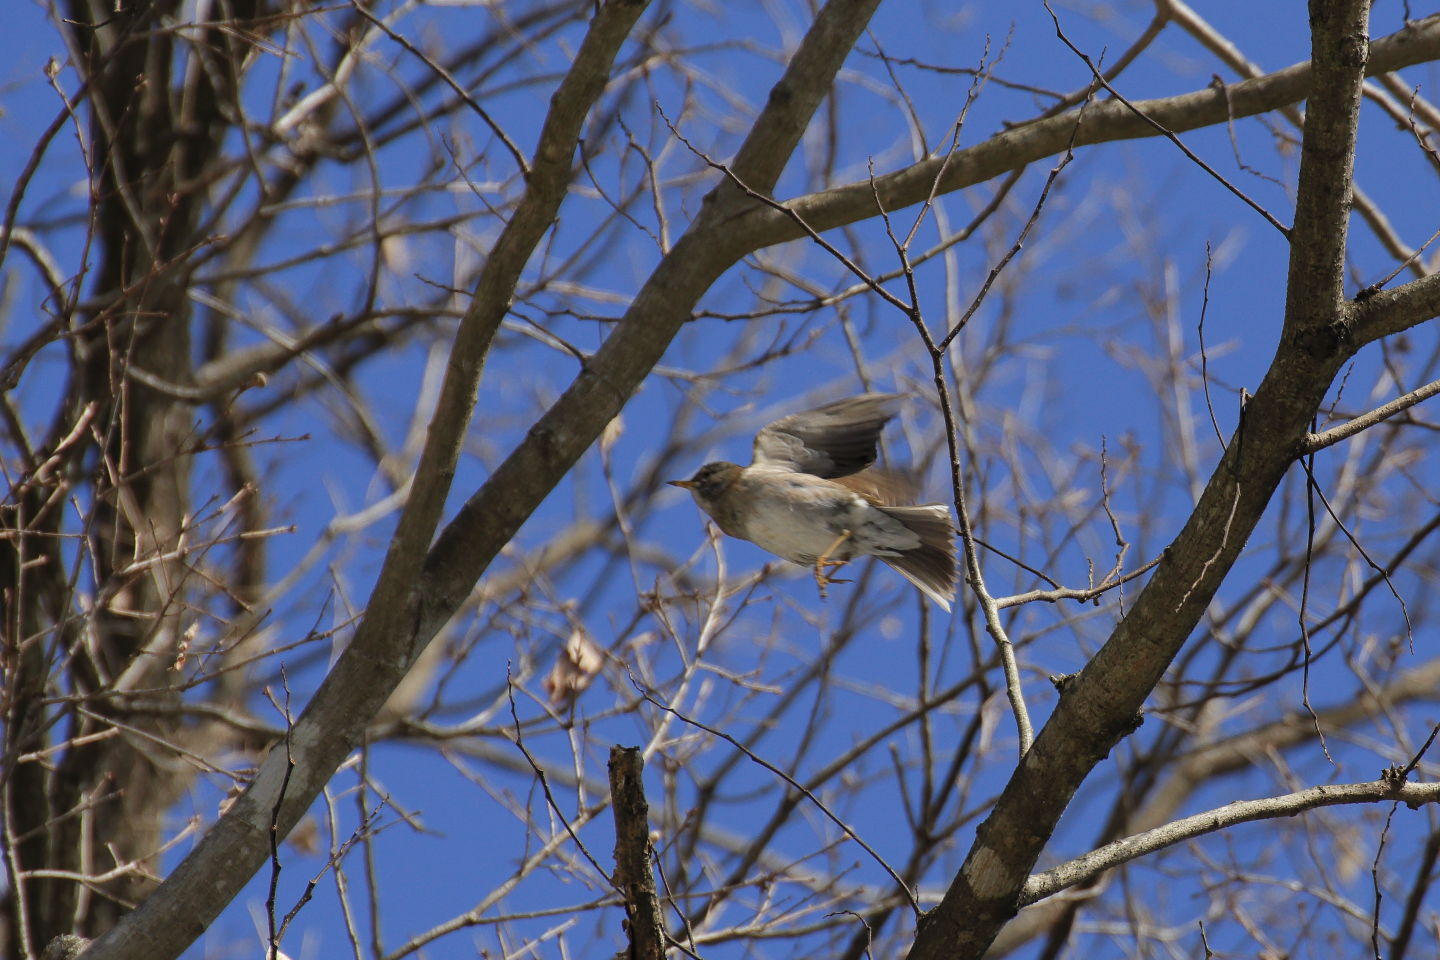 Canon EOS 6D + TAMRON SP 70-300mm F/4-5.6 Di VC USD (A005)